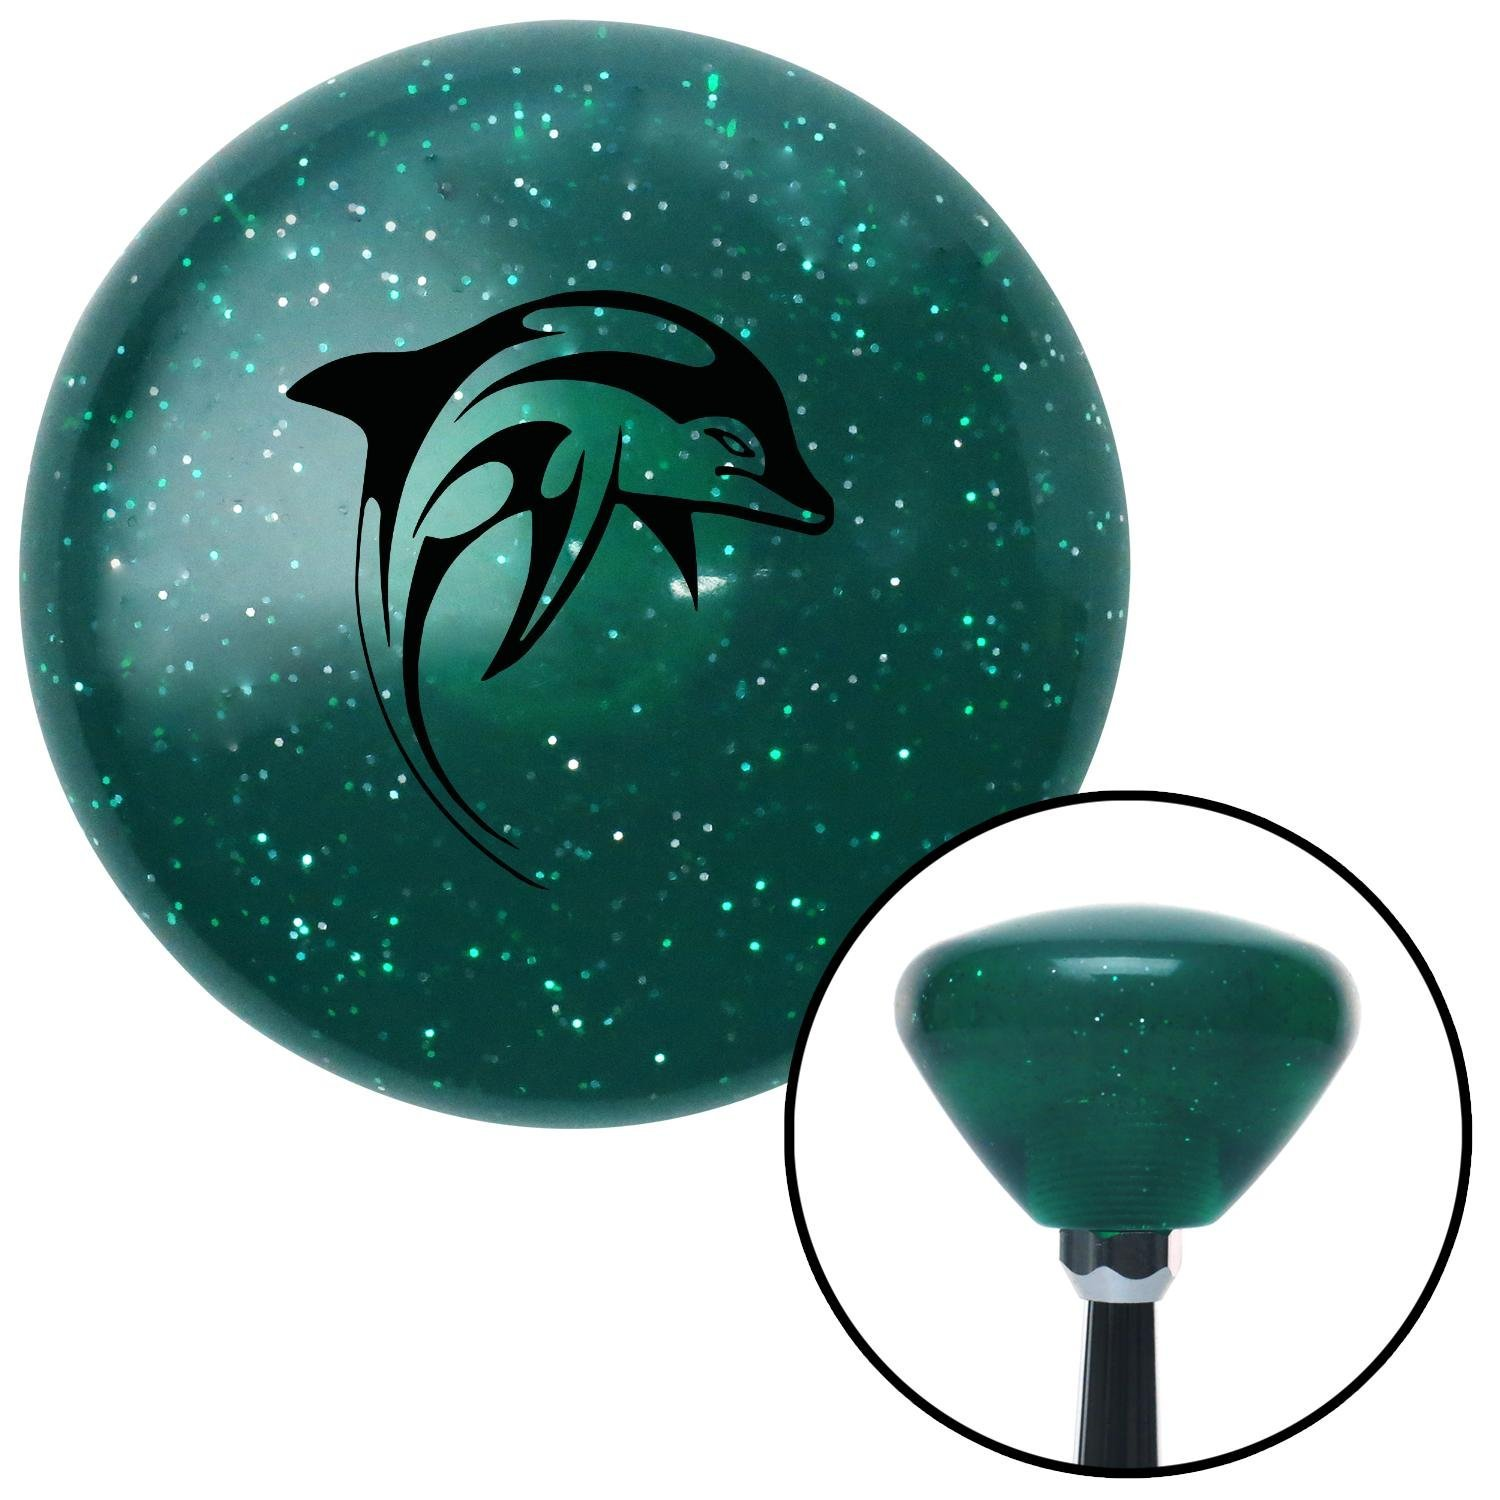 American Shifter 206779 Green Retro Metal Flake Shift Knob with M16 x 1.5 Insert Black Marine Dolphin #2